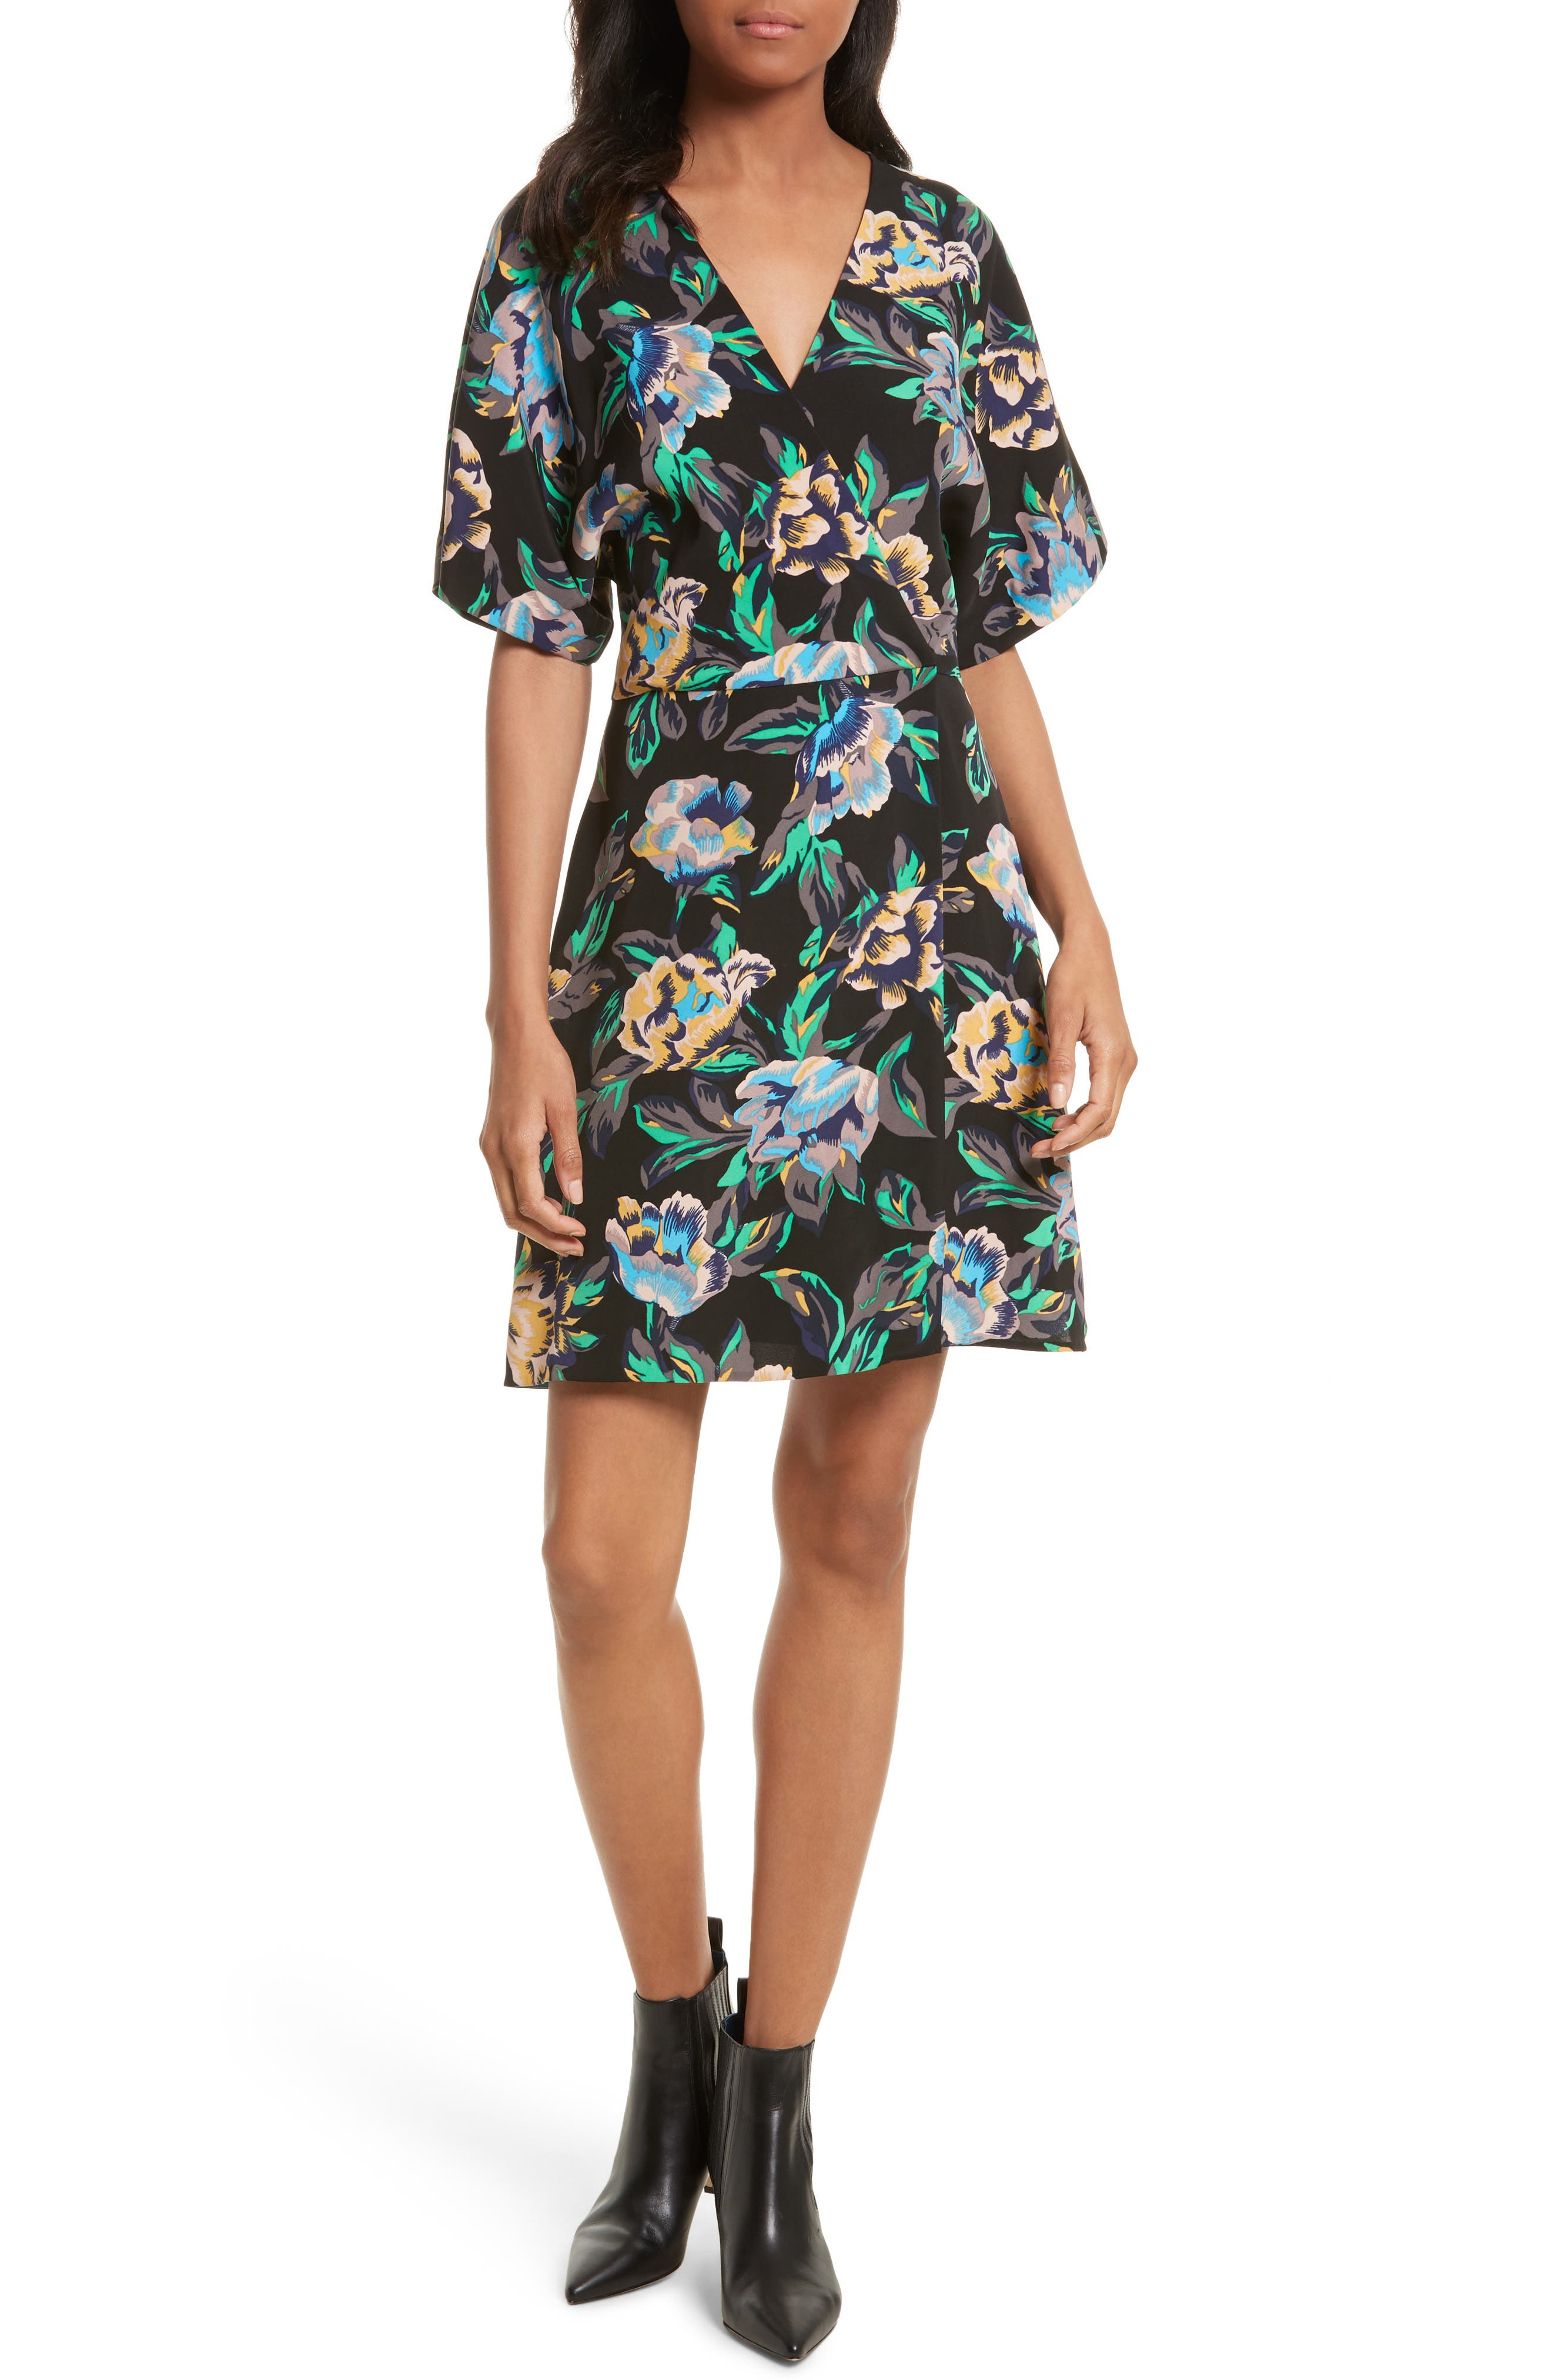 Diane von Furstenberg Floral Faux Wrap Dress